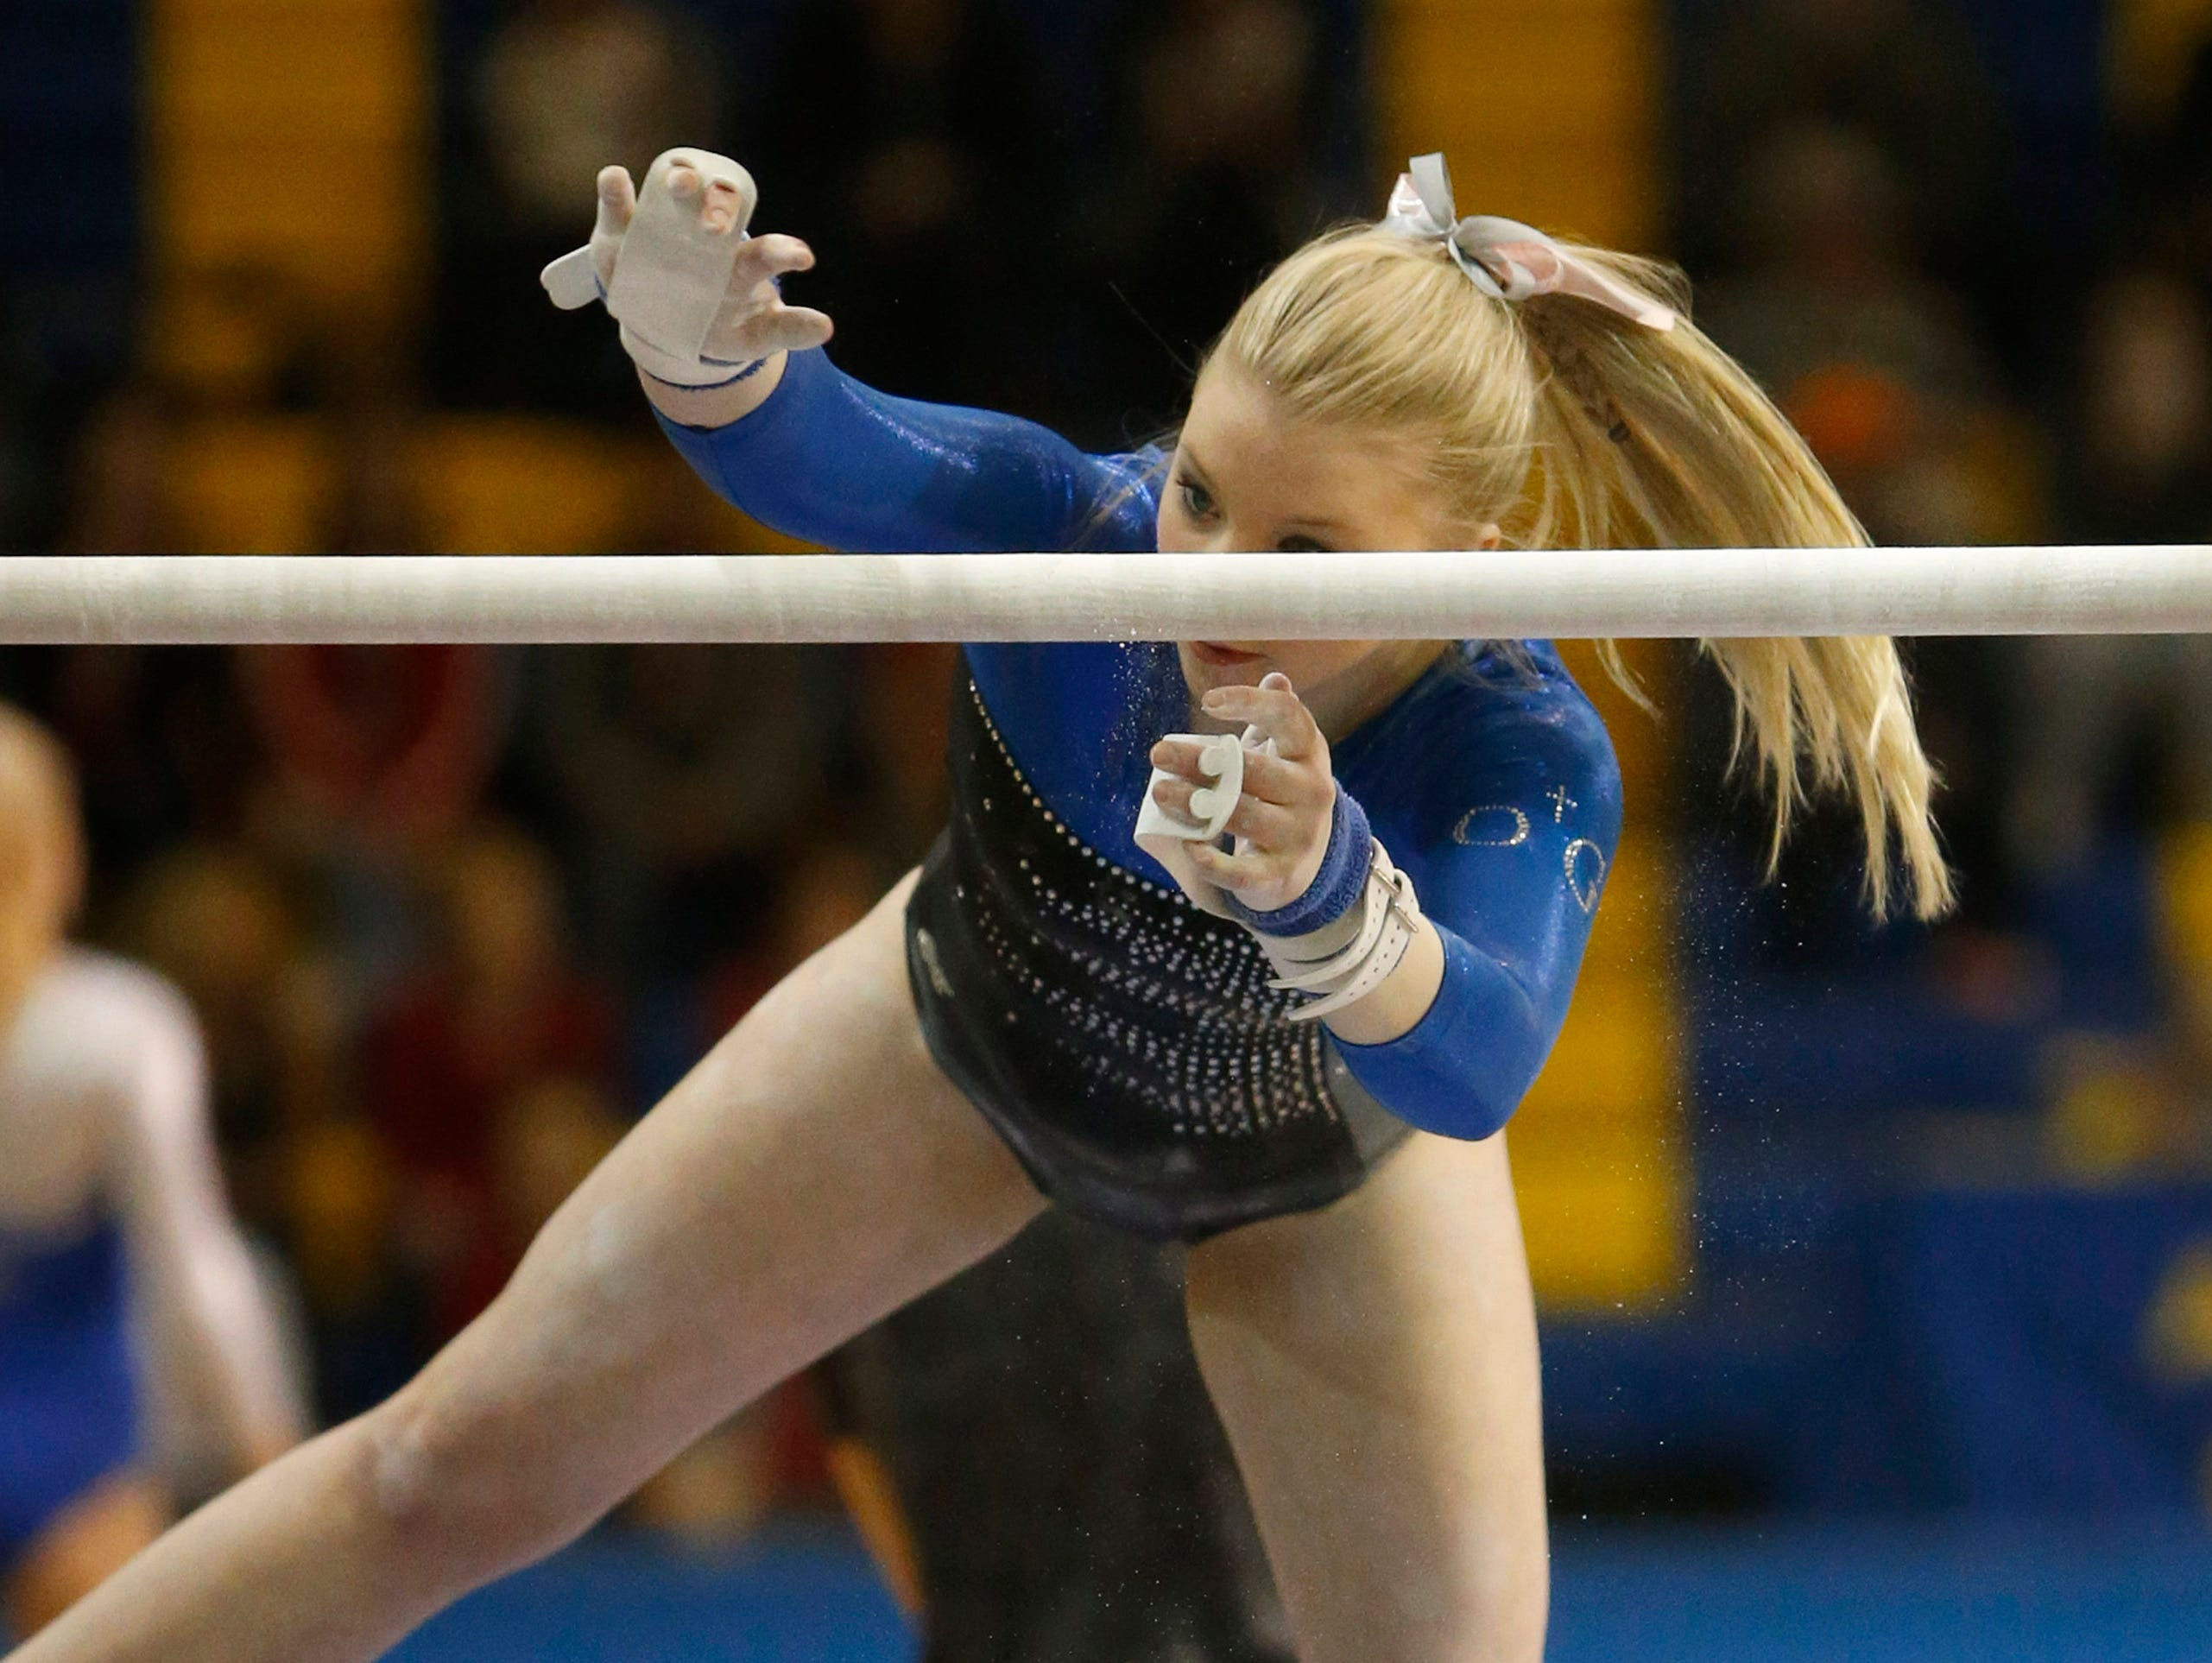 Sioux Falls O'Gorman's Lizzie Miller reaches for the bar during Saturday's individual competition at the Class AA State Gymnastics Meet at the Golden Eagles Arena. American News